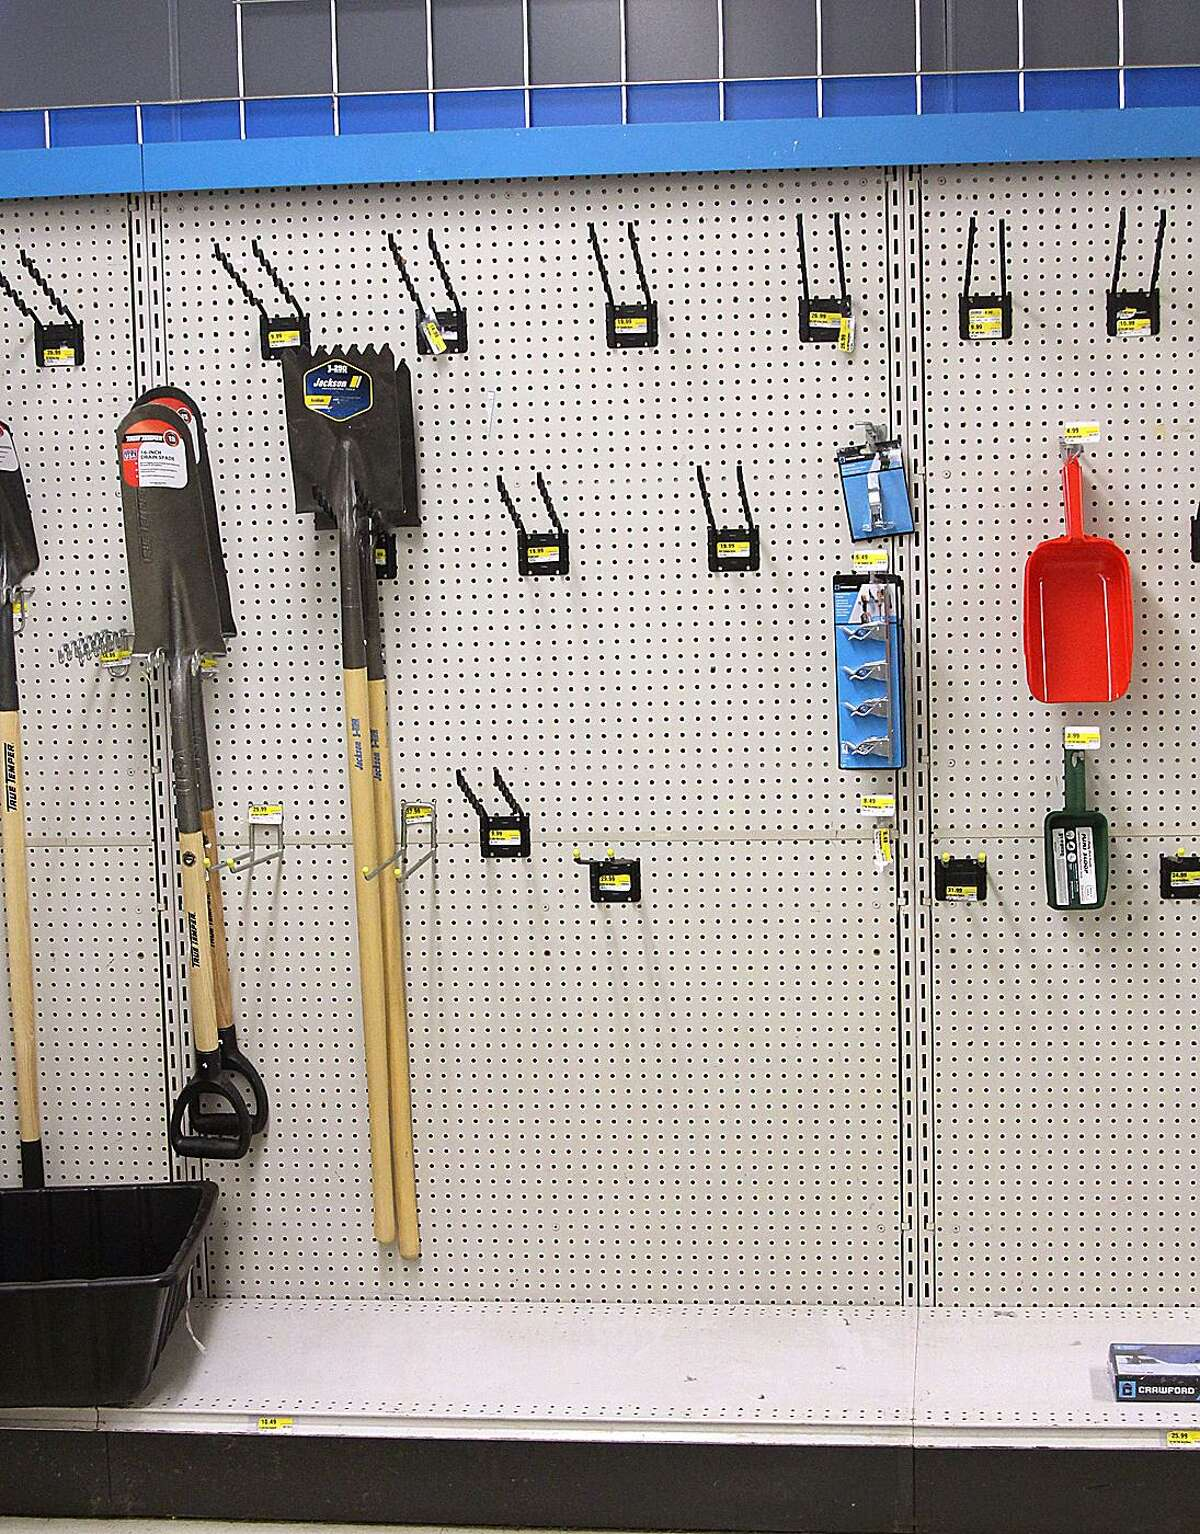 The rack of lawn and garden tools is sparcely populated at Deep Hardware on Wednesday, March 22, 2017, in Danbury, Conn., as the store is holding a closing sale